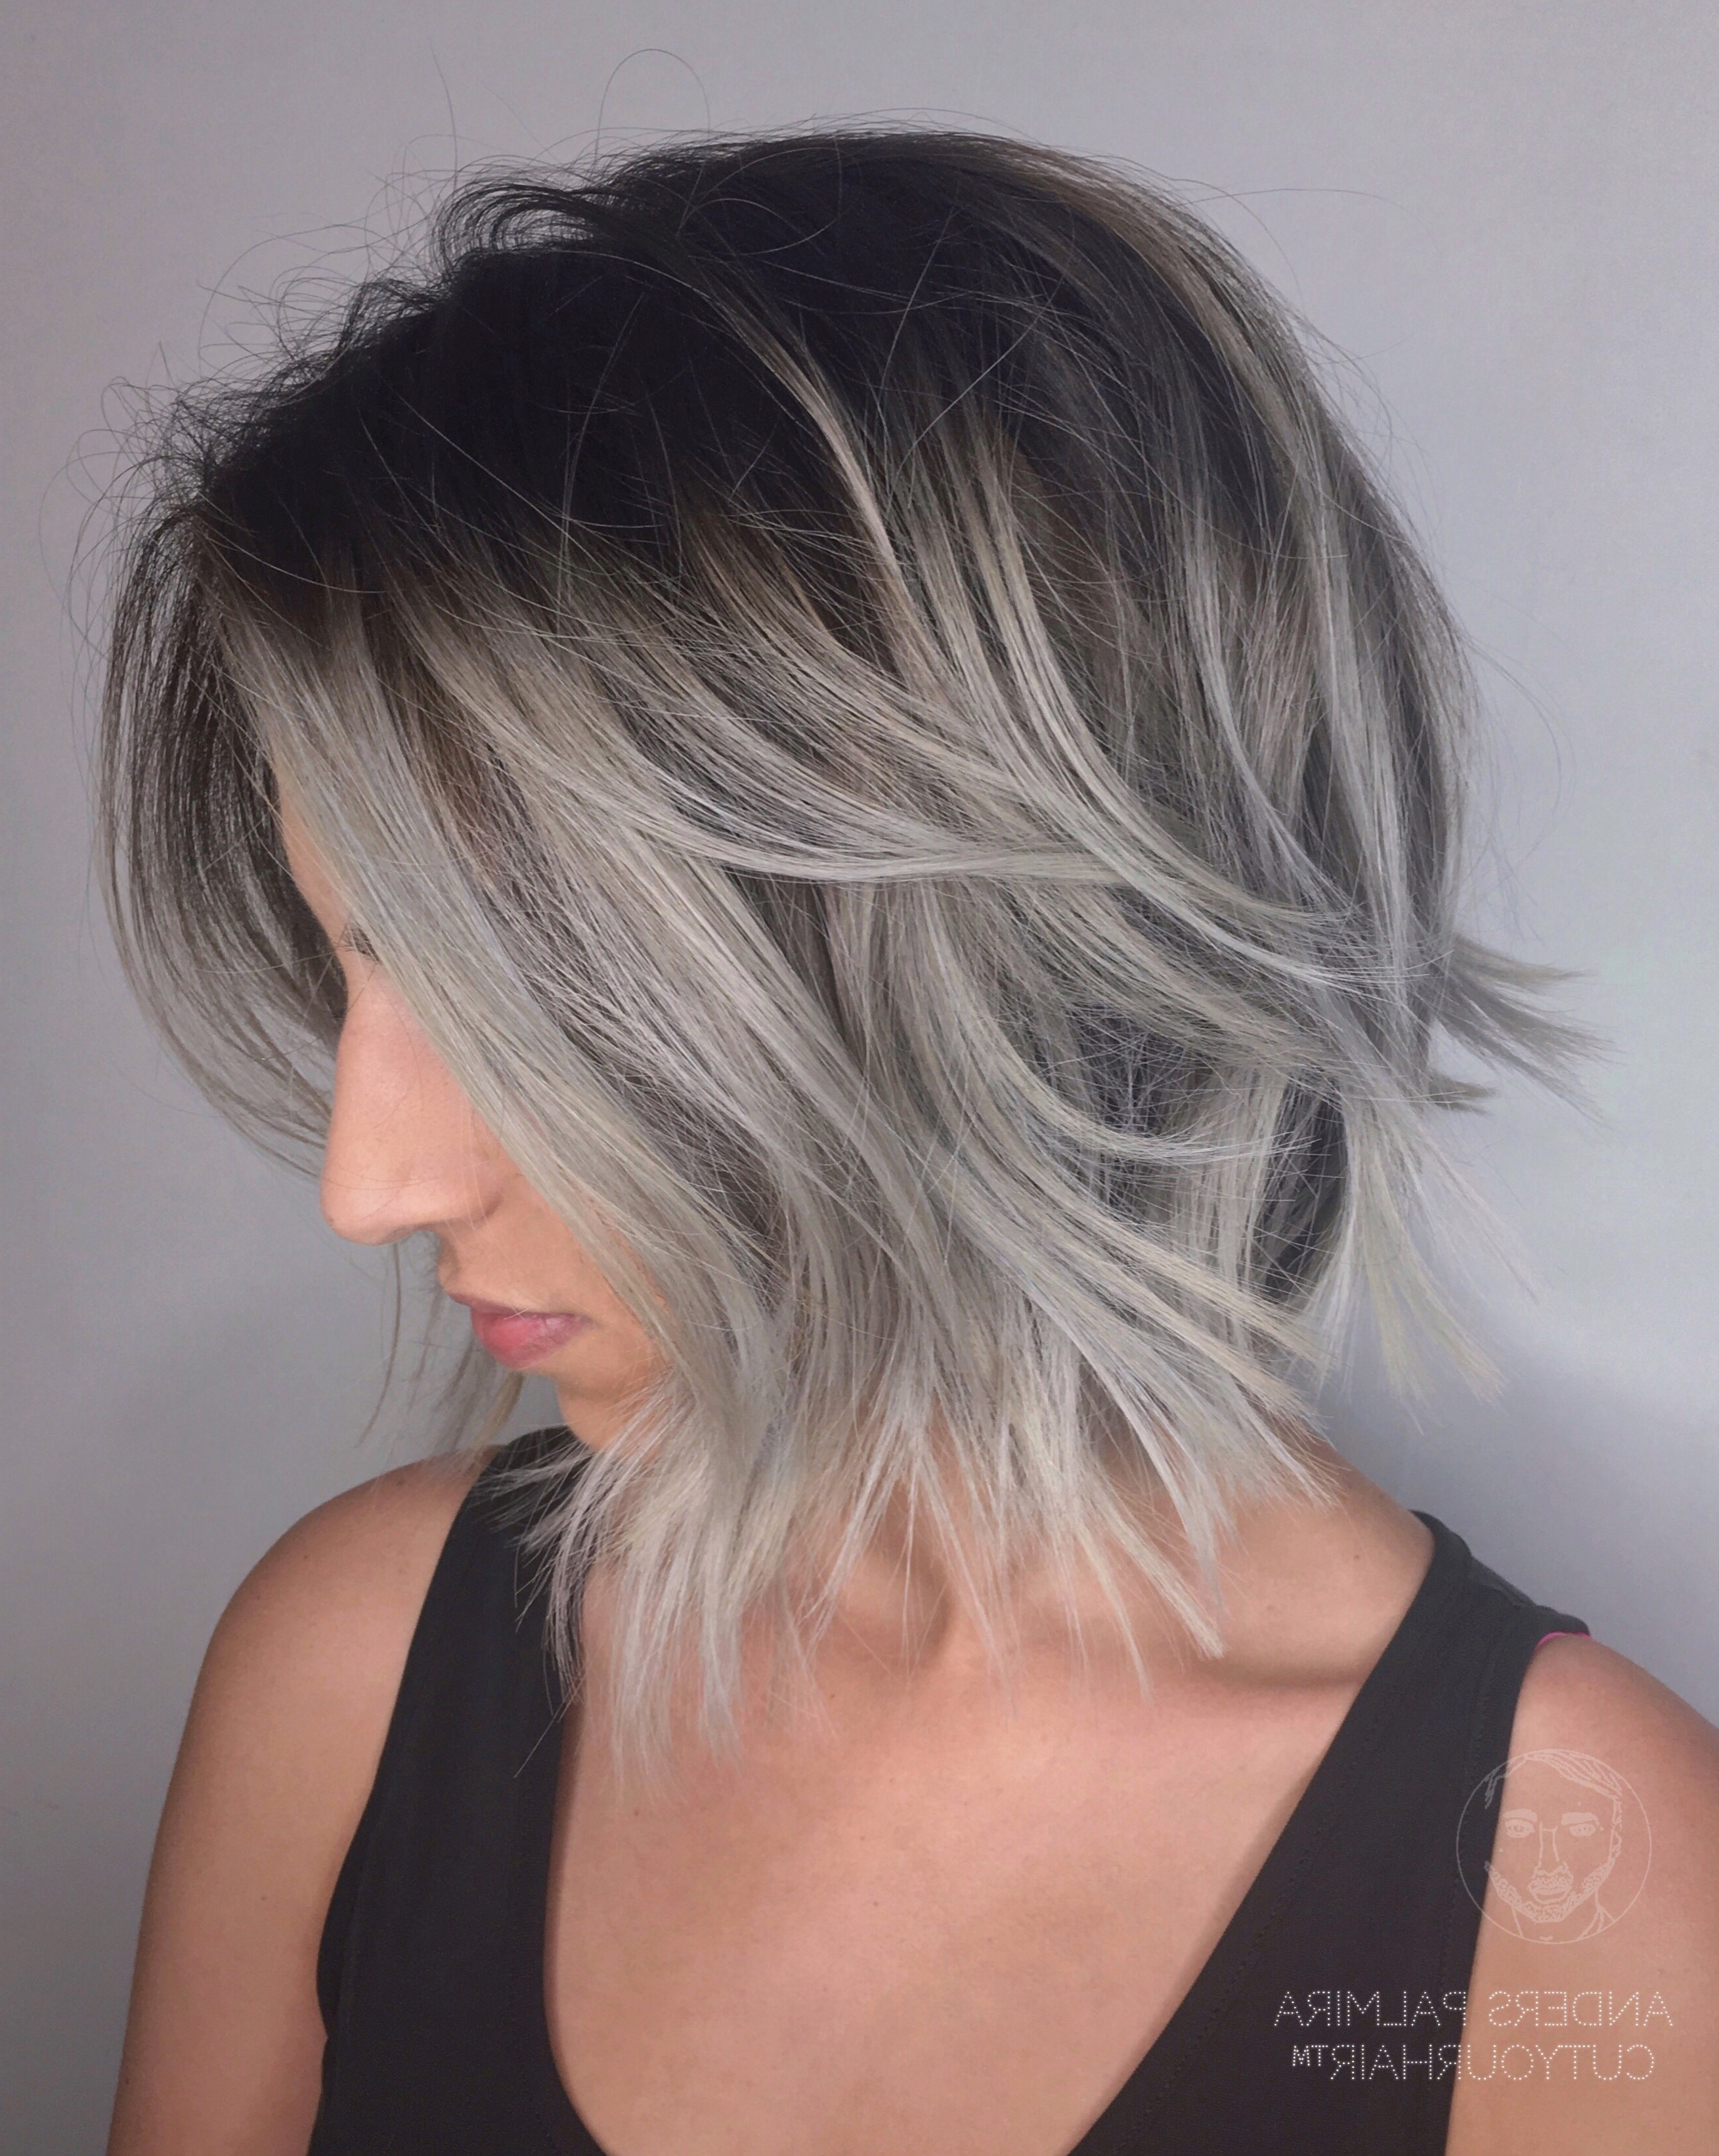 Aveda Wavy Long Blonde Bob Short Hair Beach Wave Medium Ideas Lob In Current Short Shaggy Hairstyles For Grey Hair (View 7 of 15)